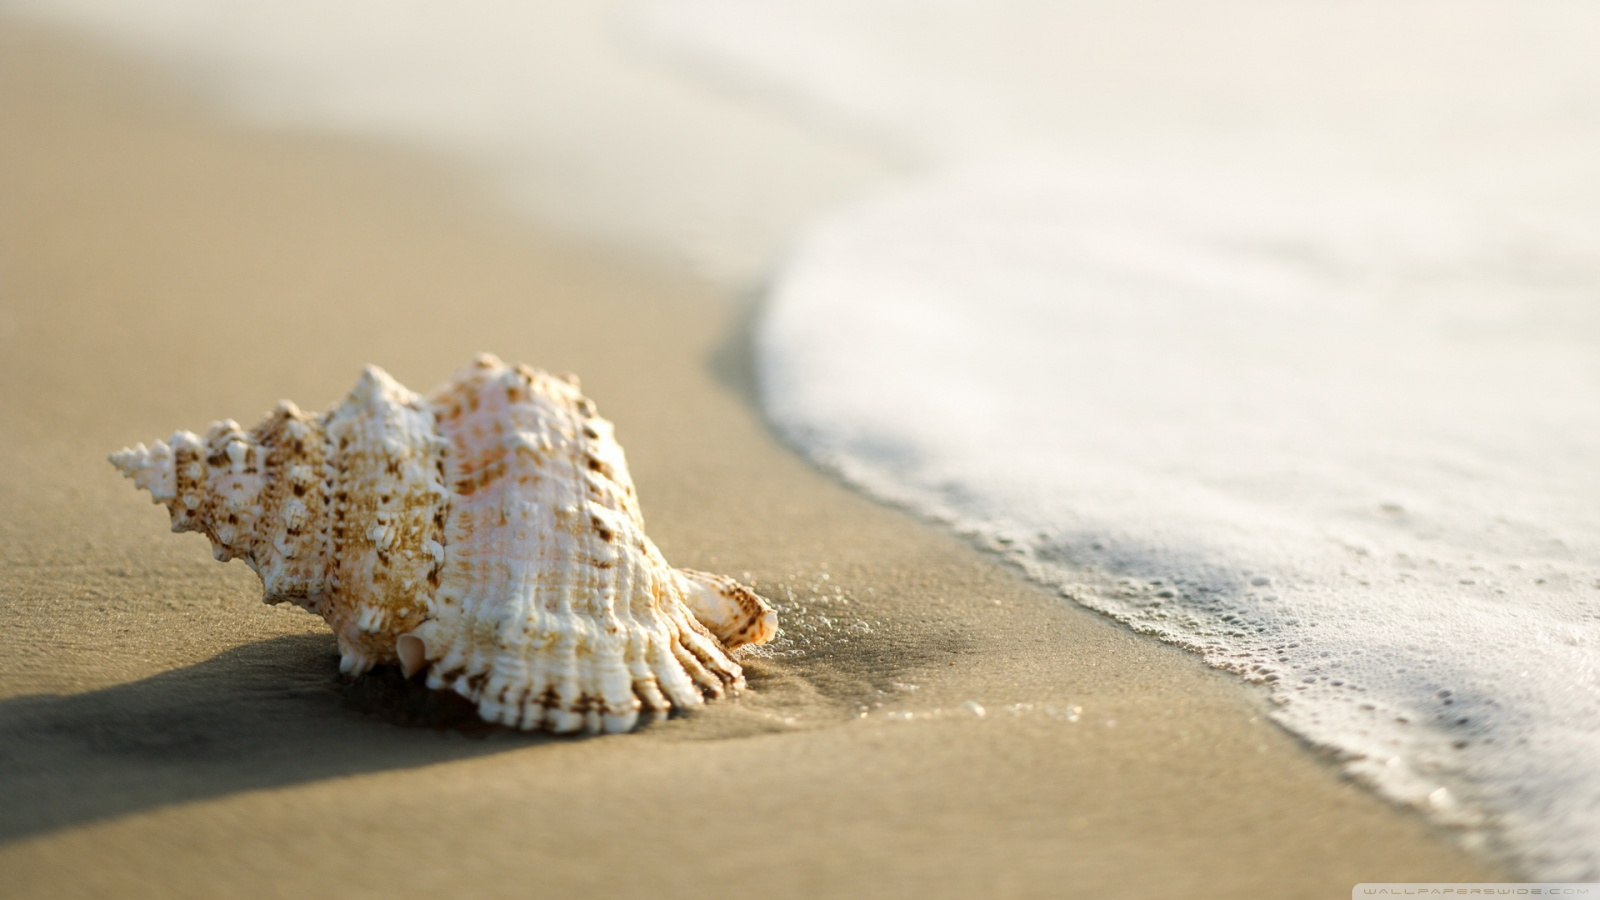 Shell Wallpapers and Background Images   stmednet 1600x900